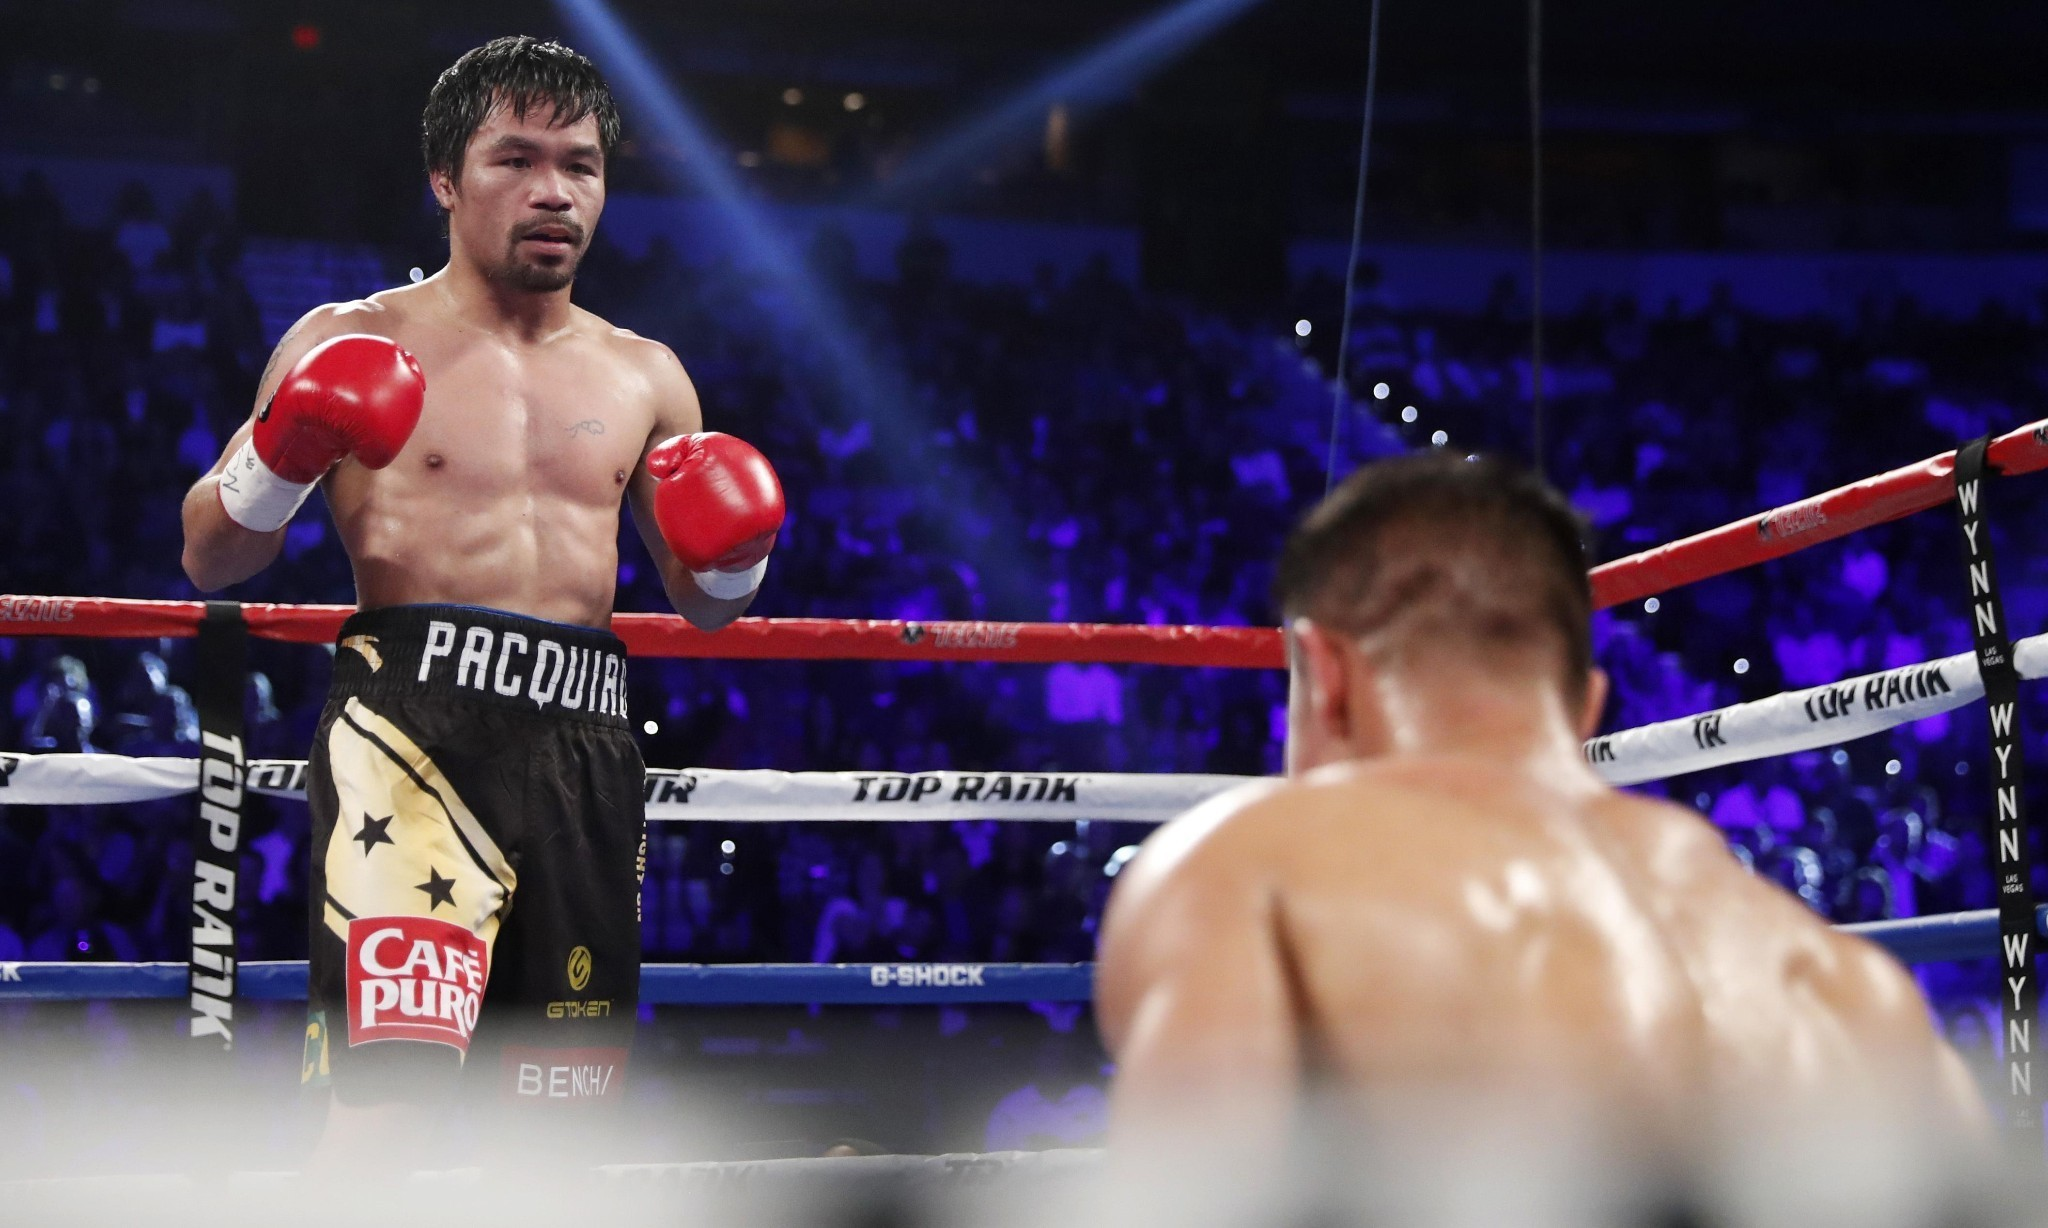 Pacquiao tops Vargas to regain title as Mayweather watches from ringside